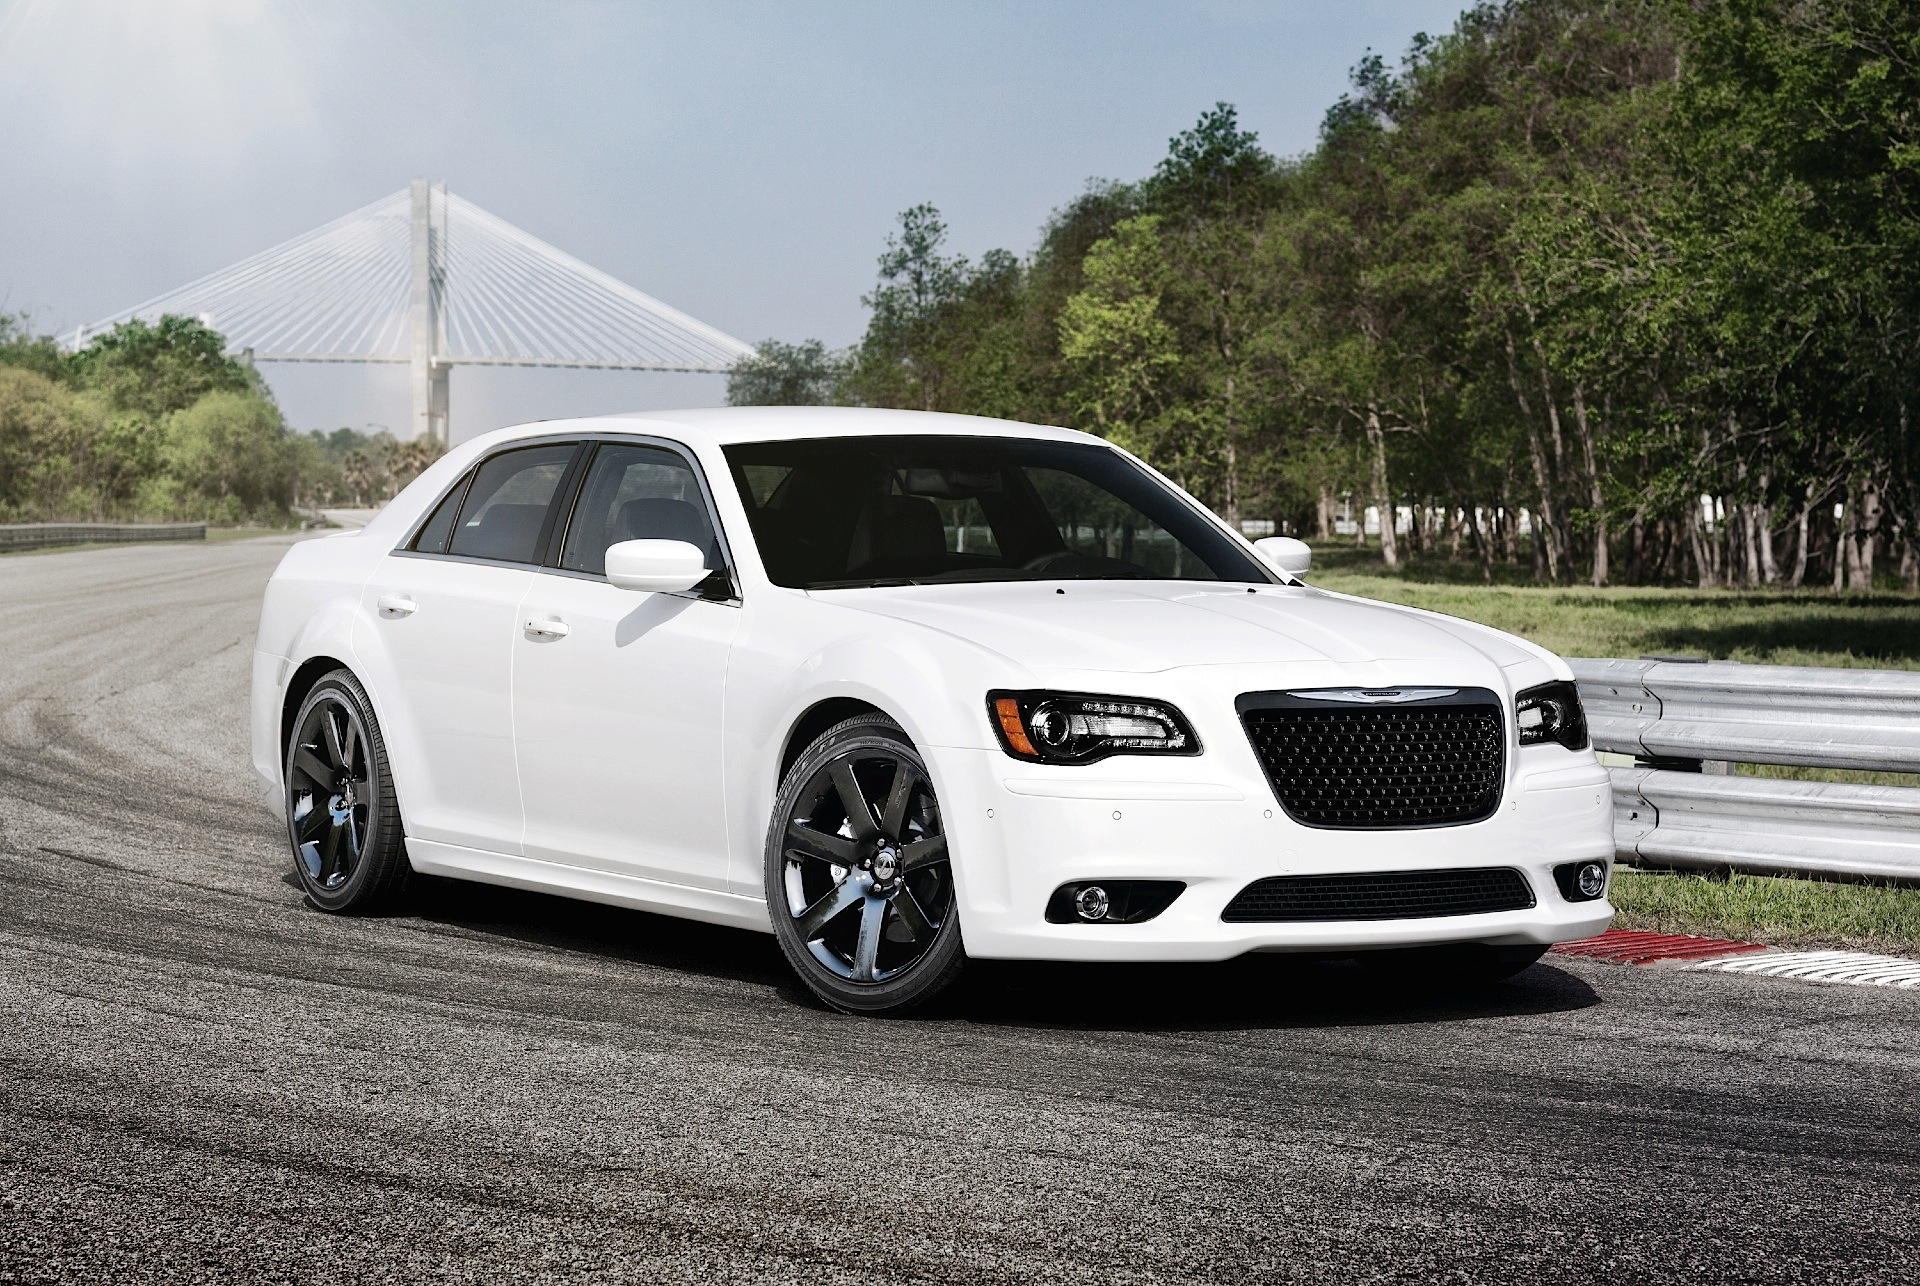 chrysler 300 srt8 specs 2011 2012 2013 2014 2015 2016 2017. Cars Review. Best American Auto & Cars Review